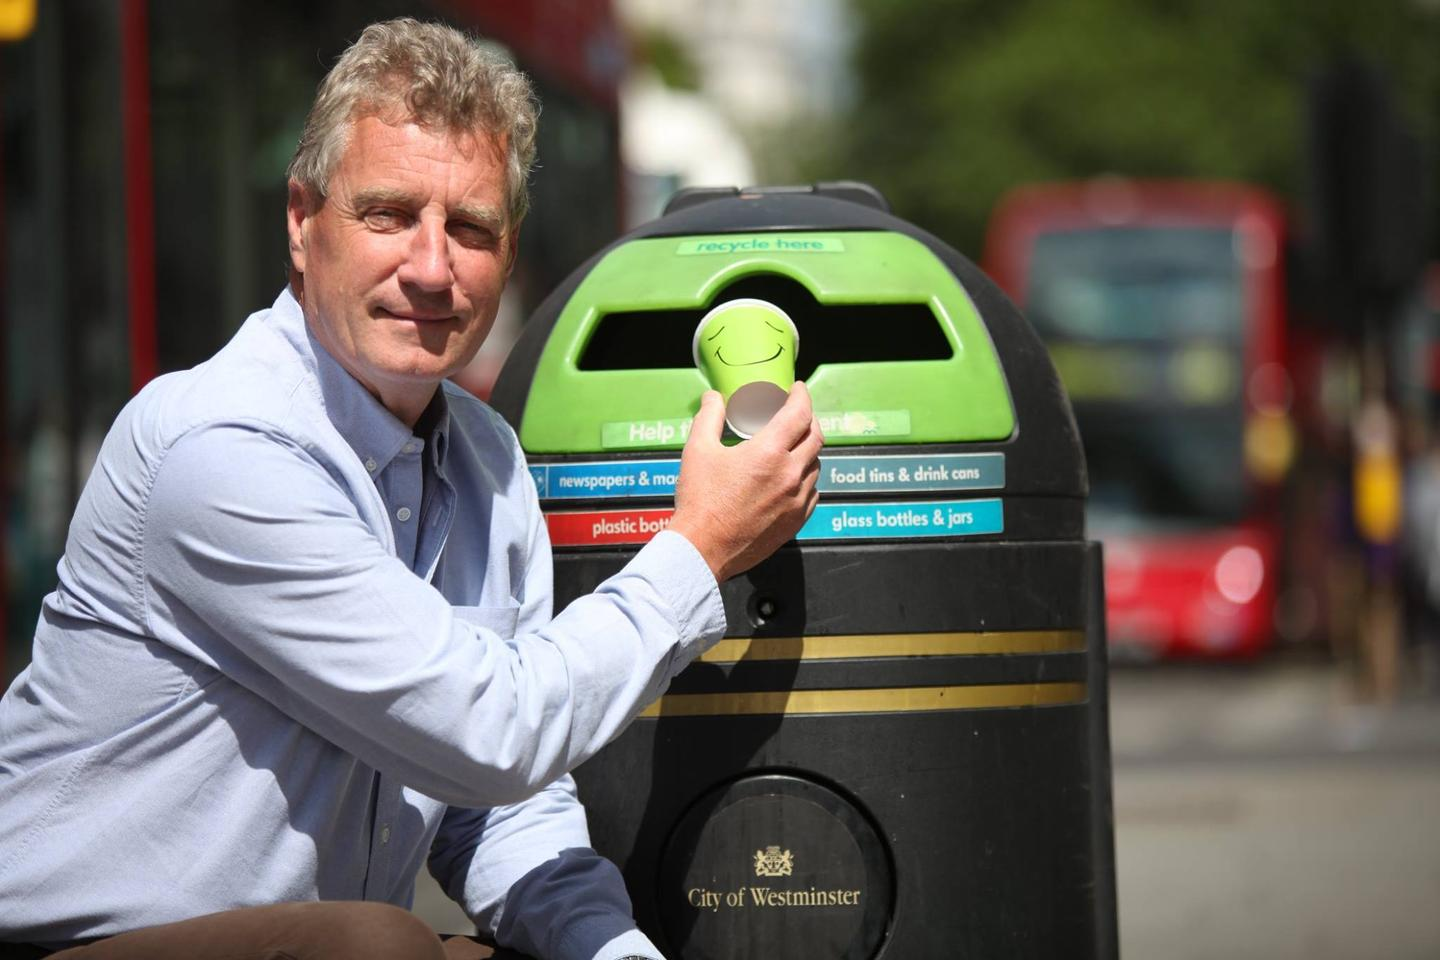 Martin Myerscough believes that little changes in the way coffee cups are produced could avoid huge amounts of waste